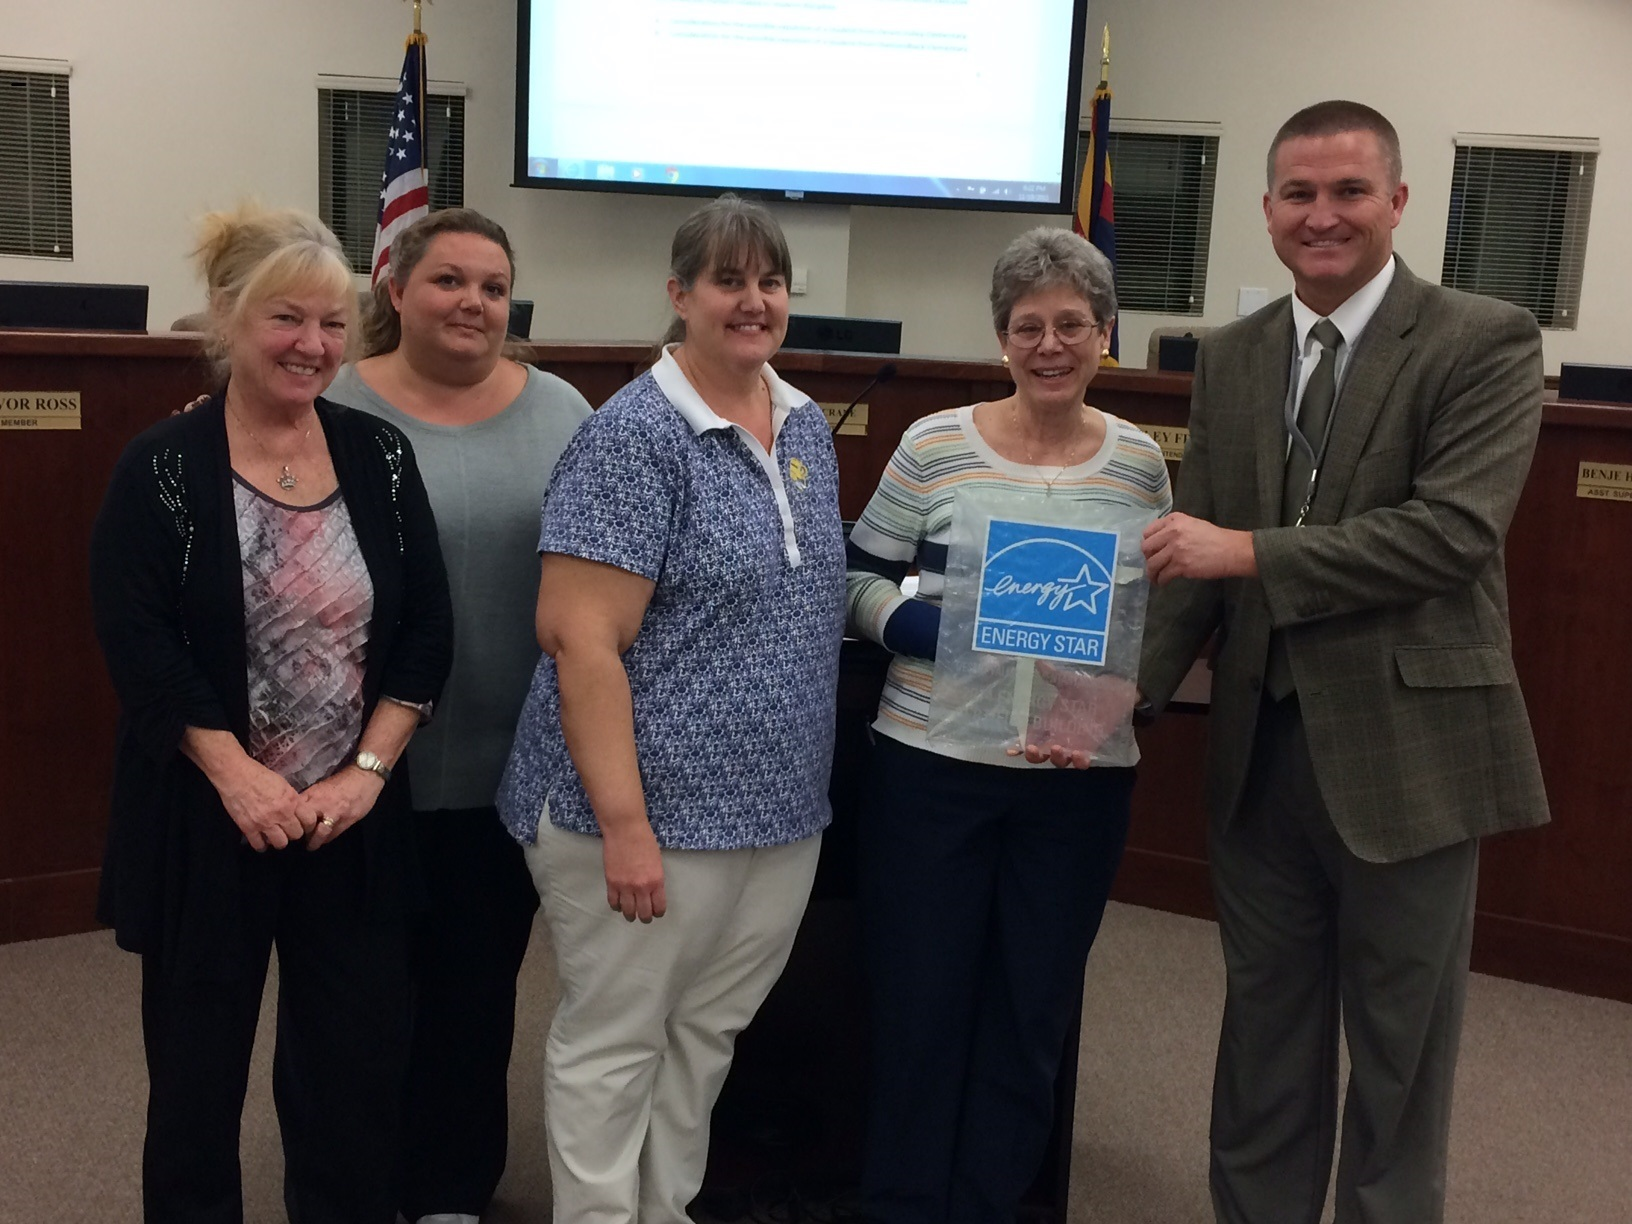 Desert Valley Elementary wins award for energy conservation, education Desert-Valley-Energy-Star-2-16Original